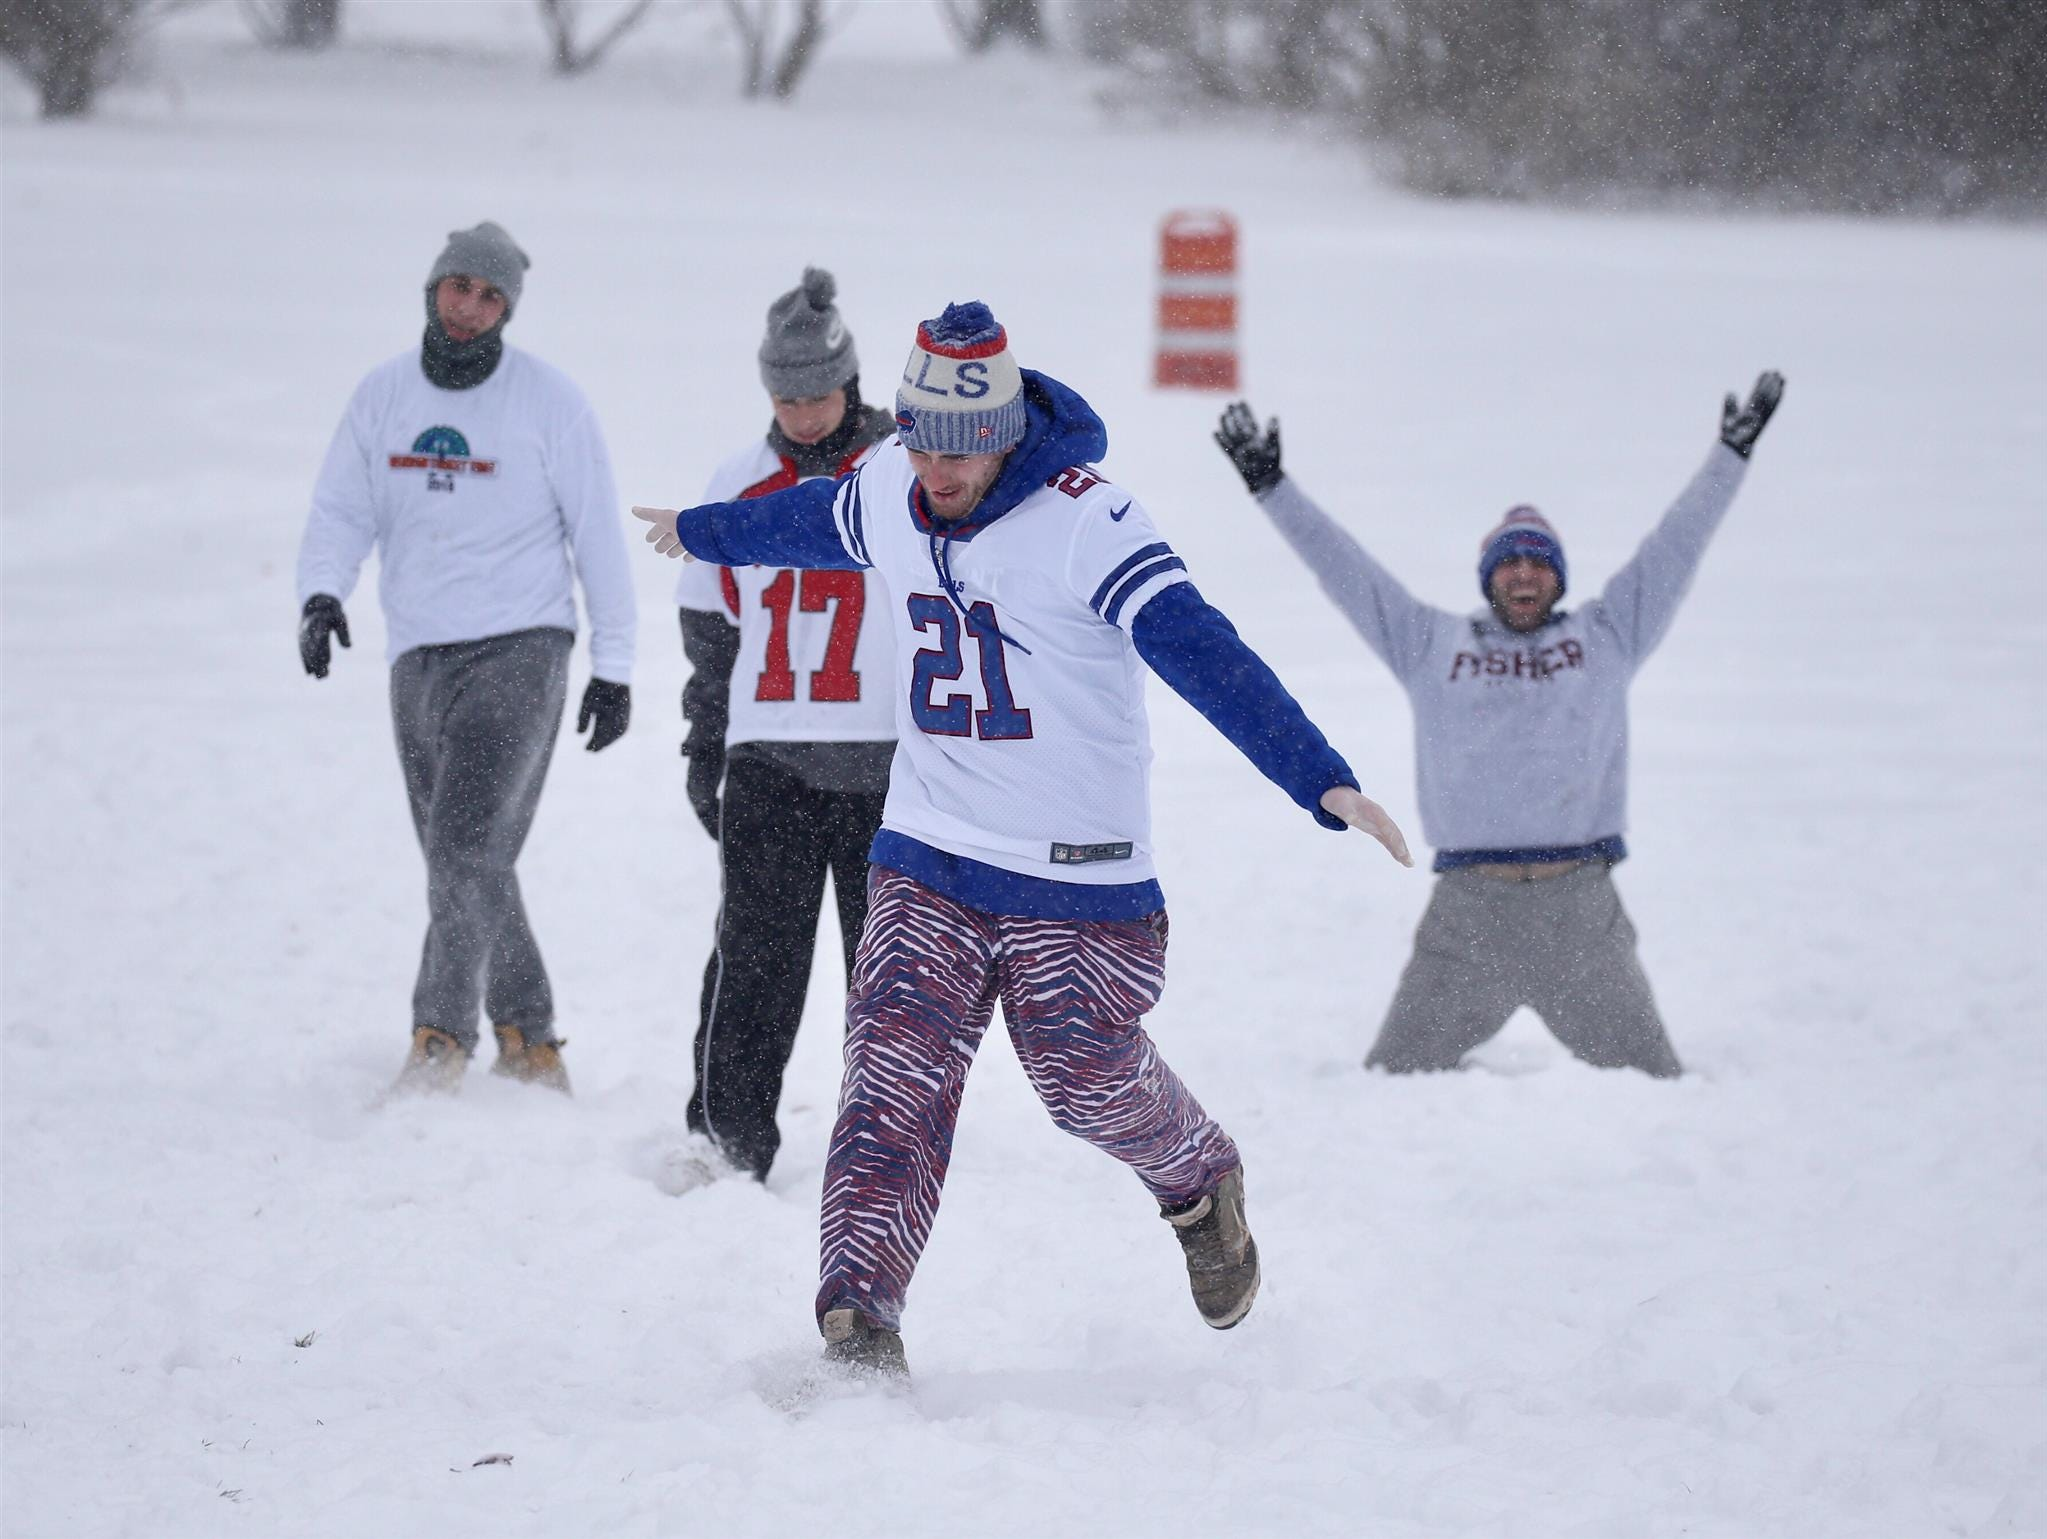 Matt McGillicuddy (21) celebrates a long touchdown catch. A group of friends didn't let the accumulating snow and frigid temperatures dissuade their football game in Cobbs Hill Park.